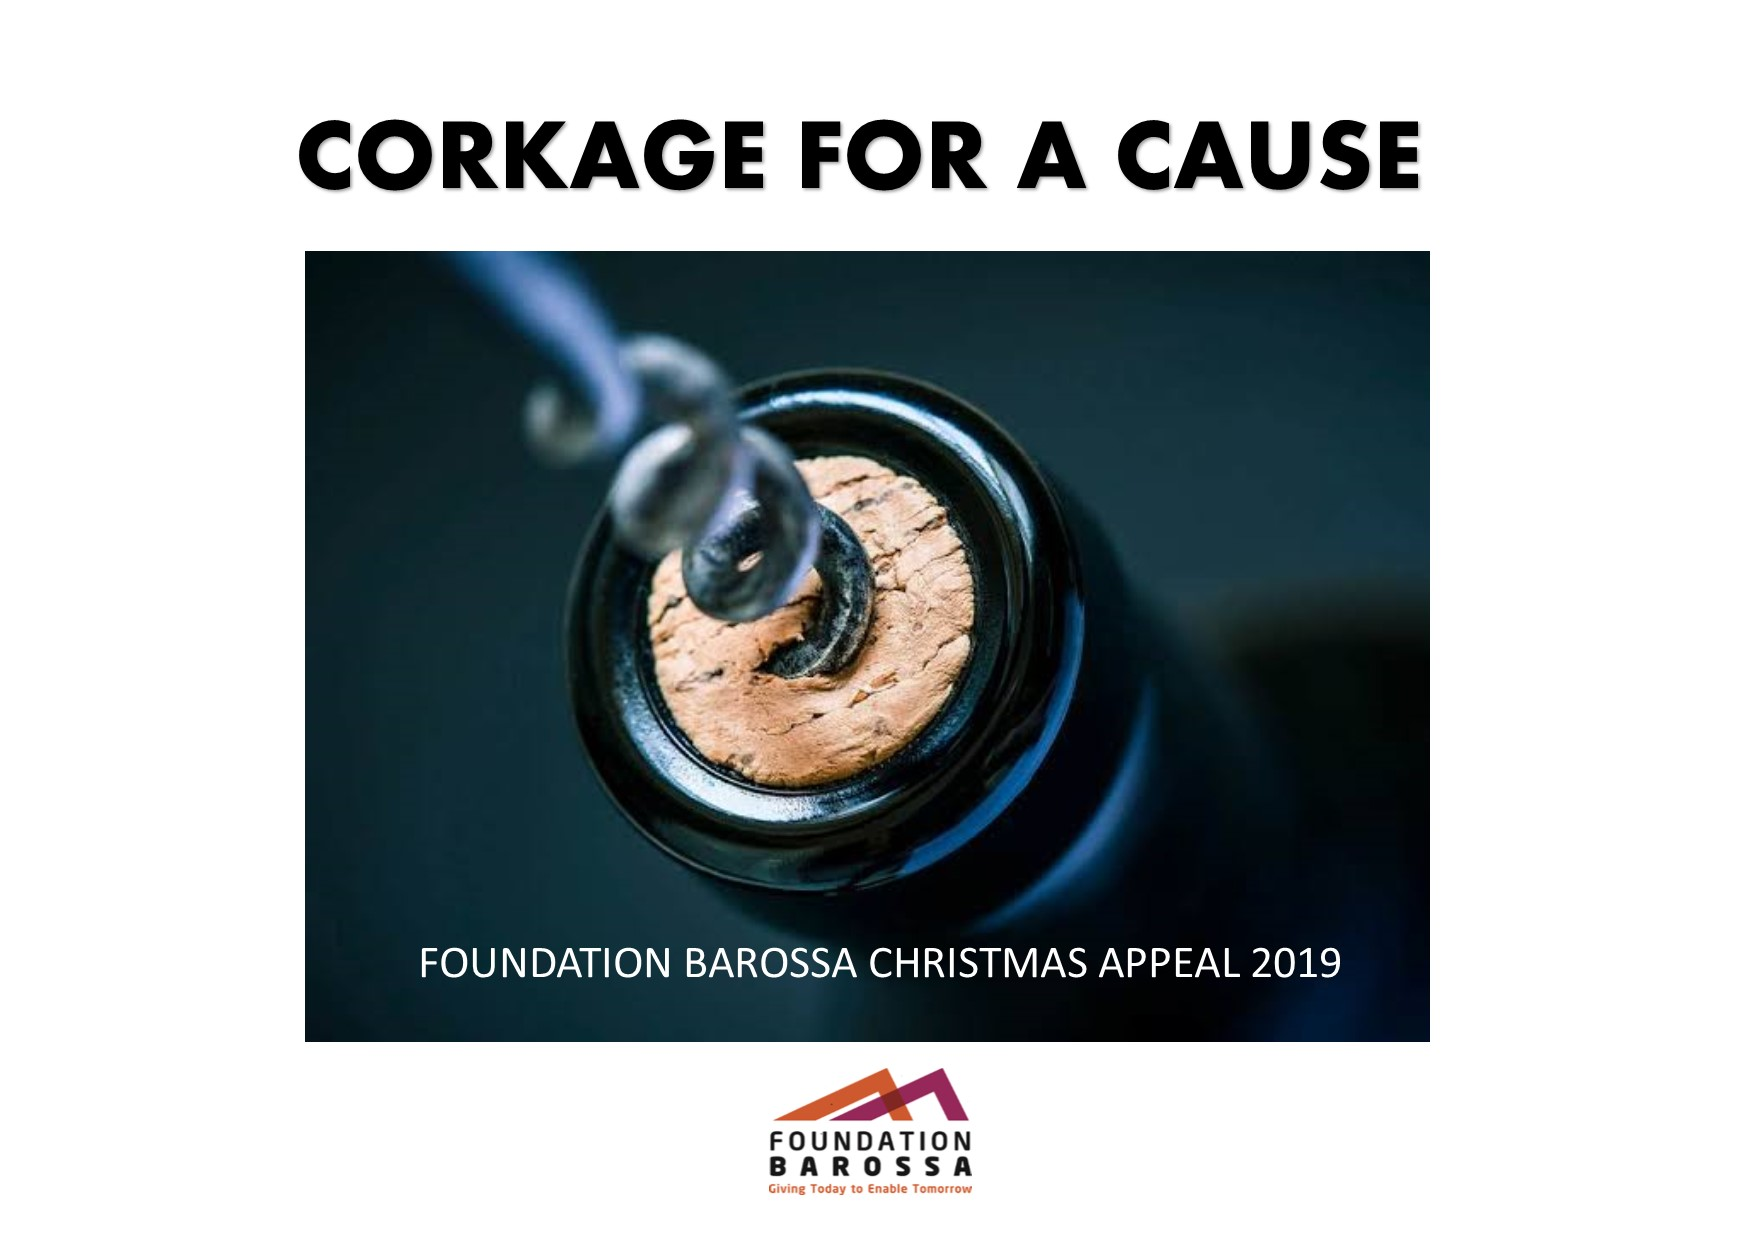 Corkage for a cause Barossa